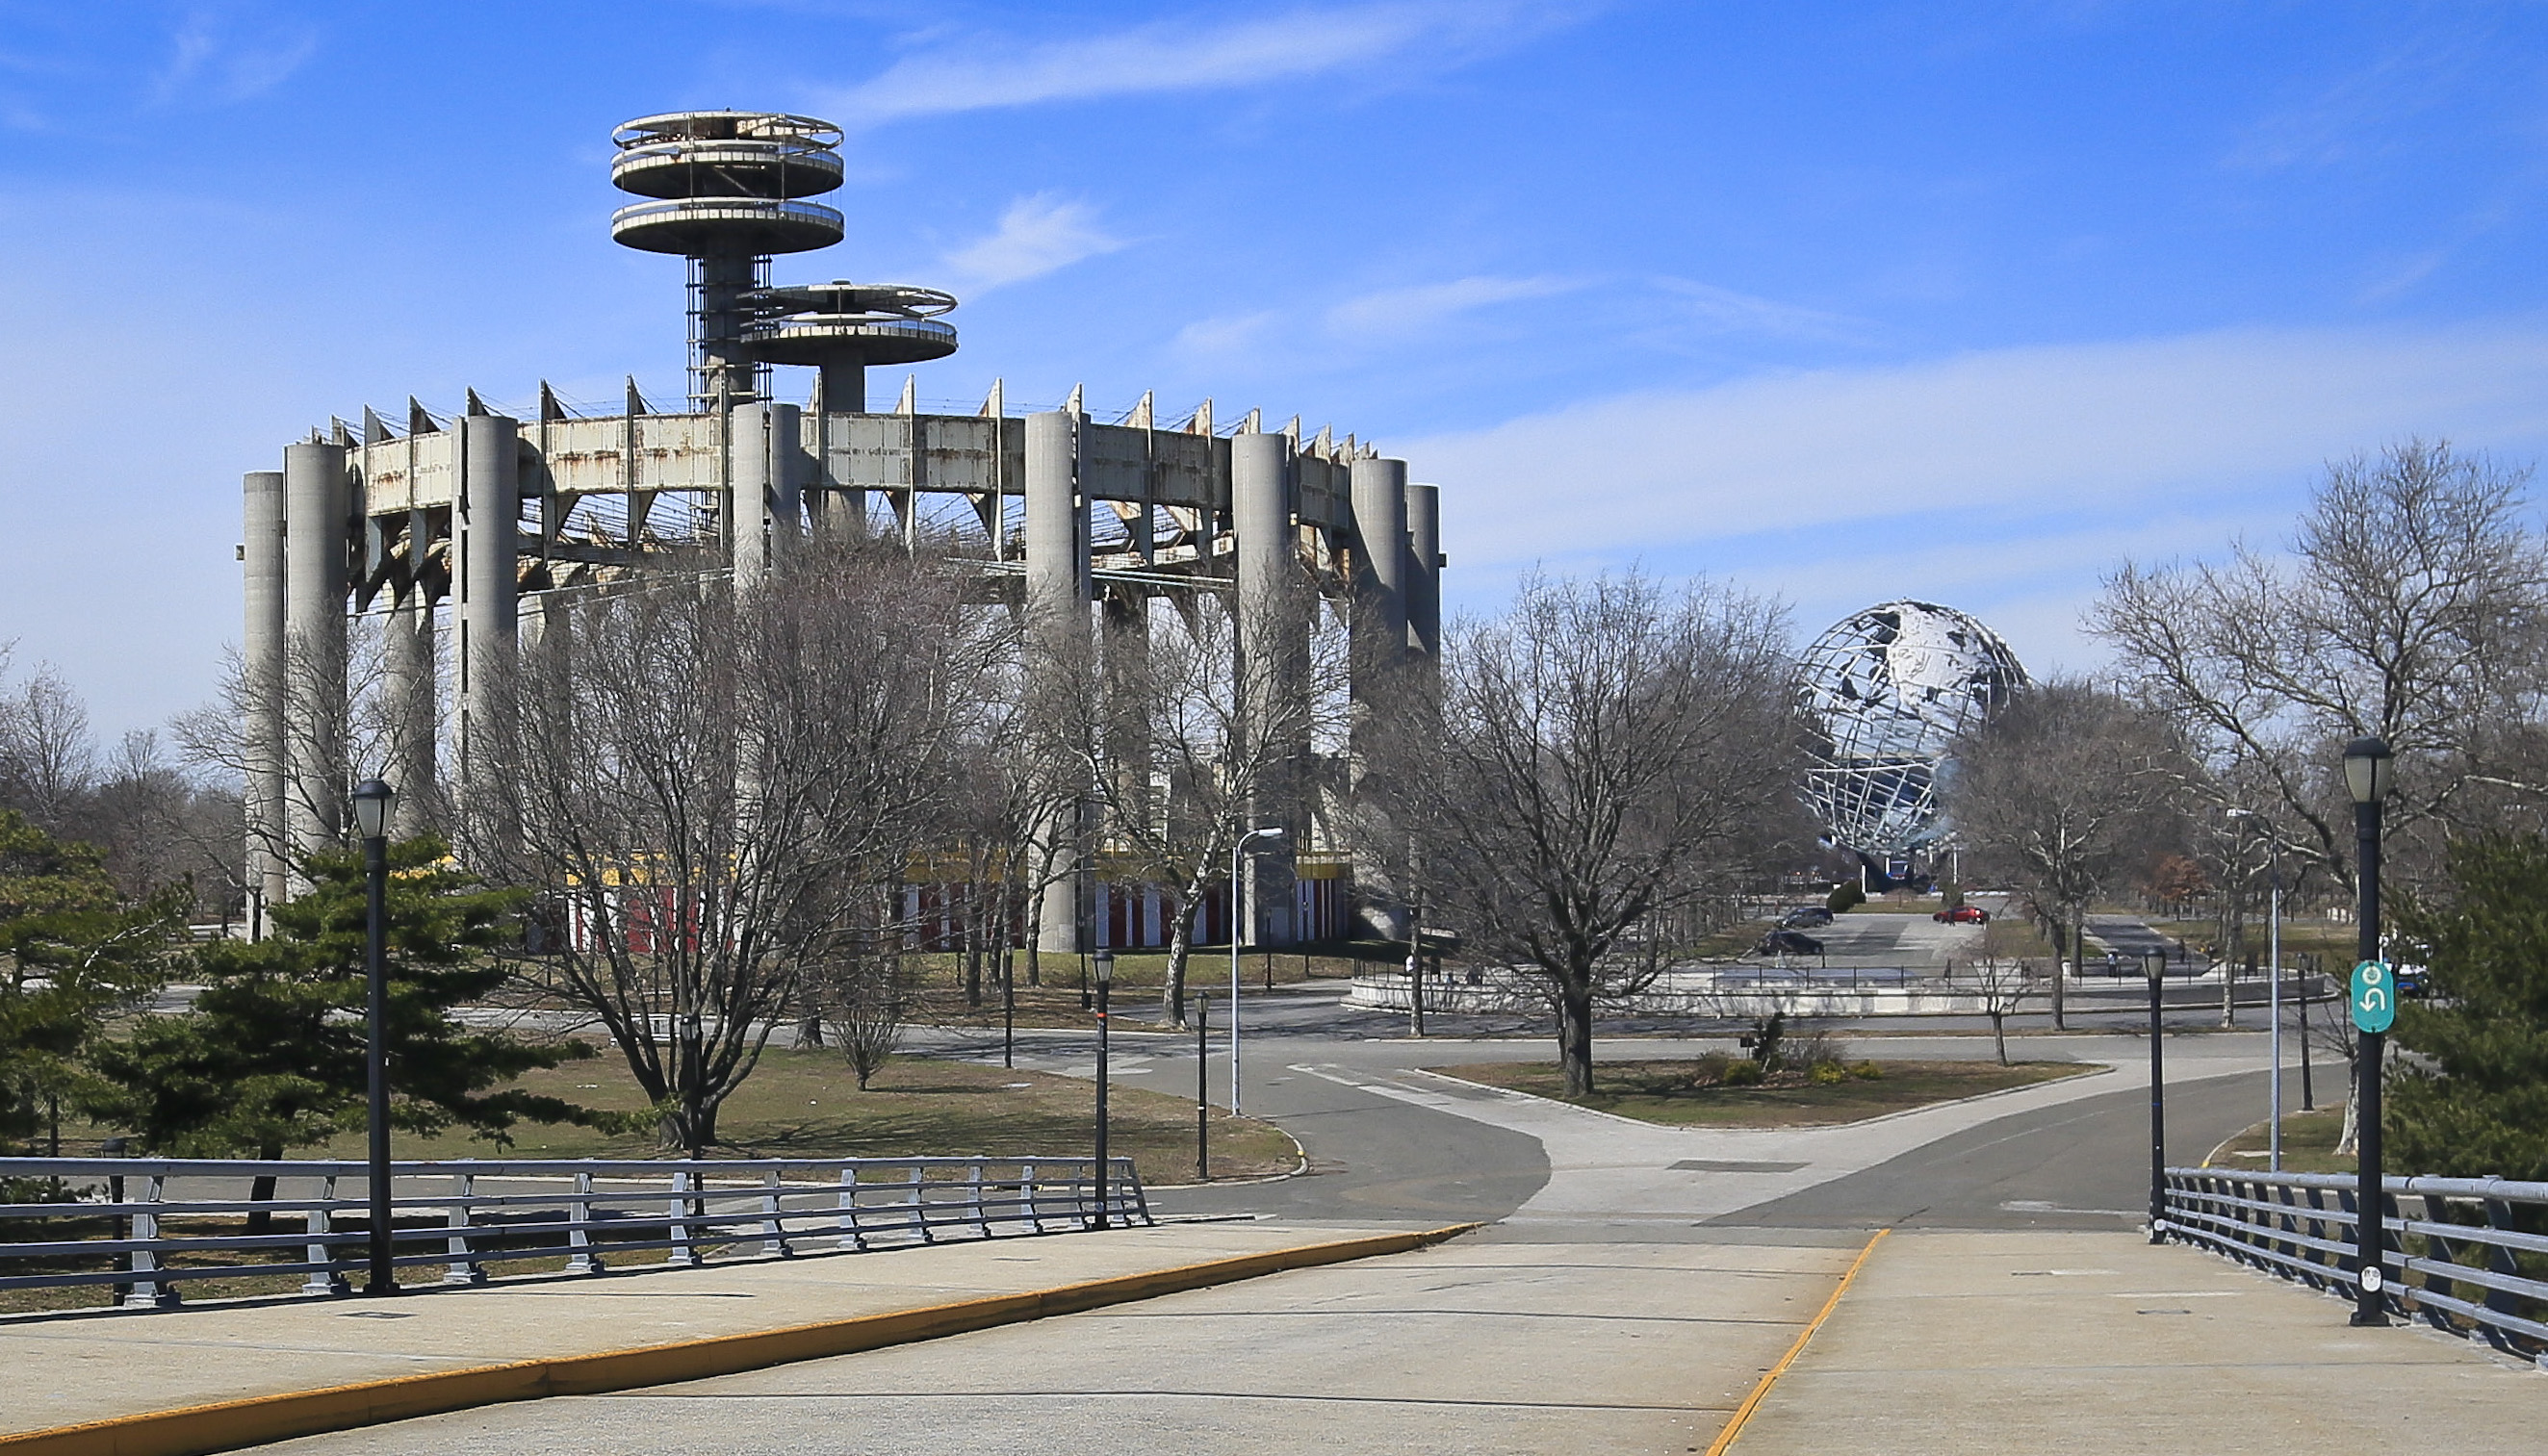 The New York Pavilion's Tent of Tomorrow and Observation Towers, as photographed on April 1, 2014.